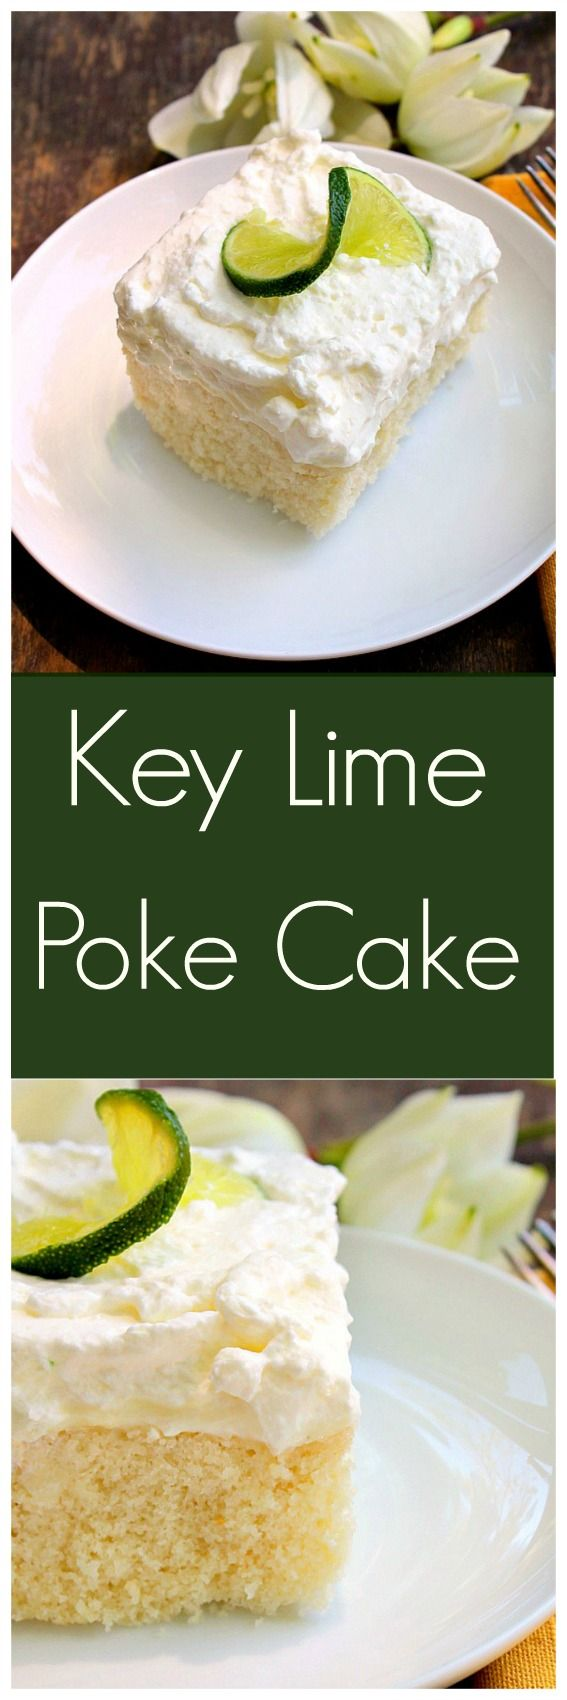 Key Lime Poke Cake... A homemade white cake with a mild key lime filling topped with whipped cream.  A very light and refreshing cake that can be made completely from scratch or semi homemade.